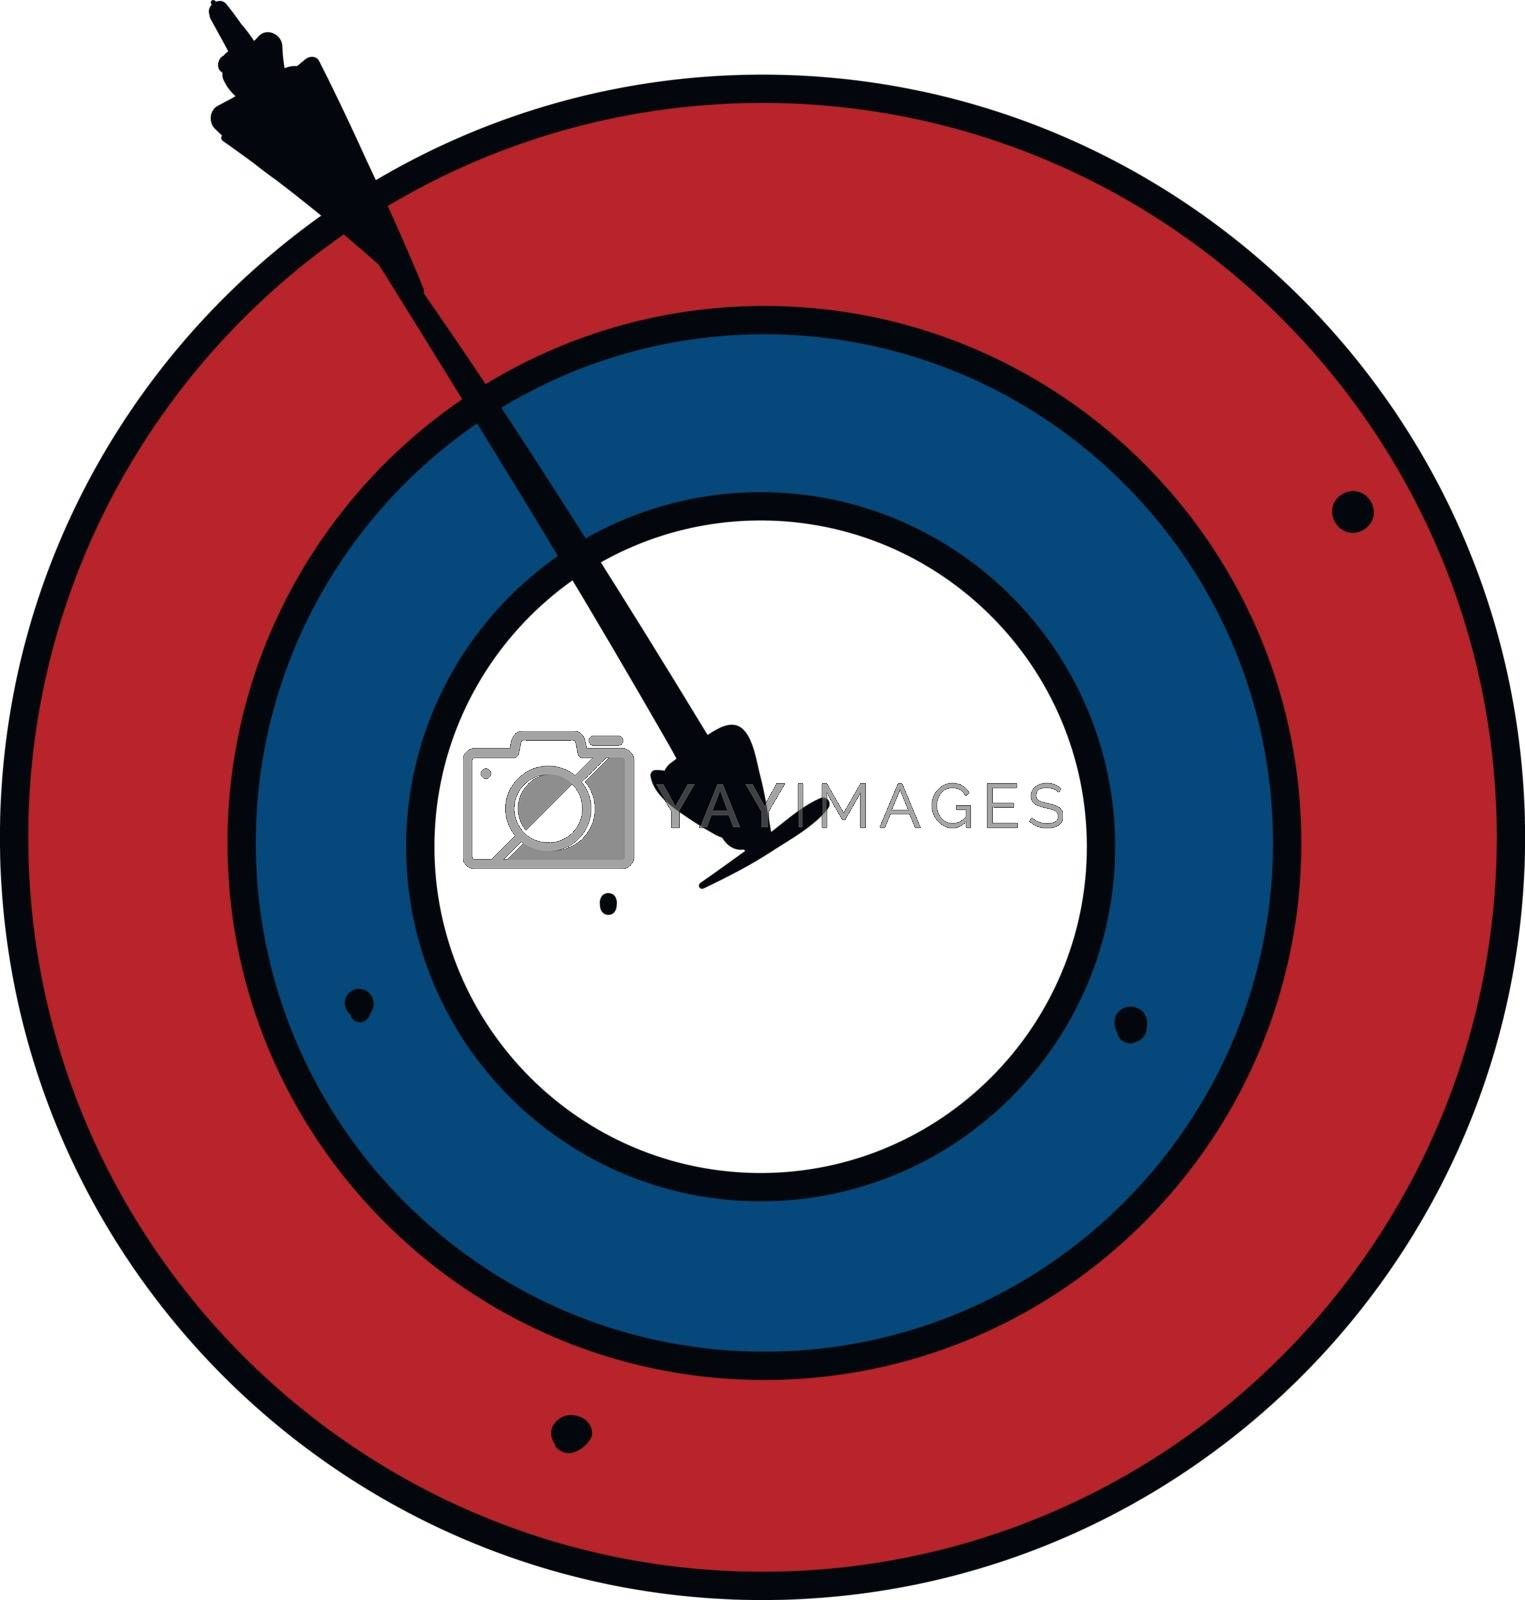 Royalty free image of Clipart of a bullseye vector or color illustration by Morphart